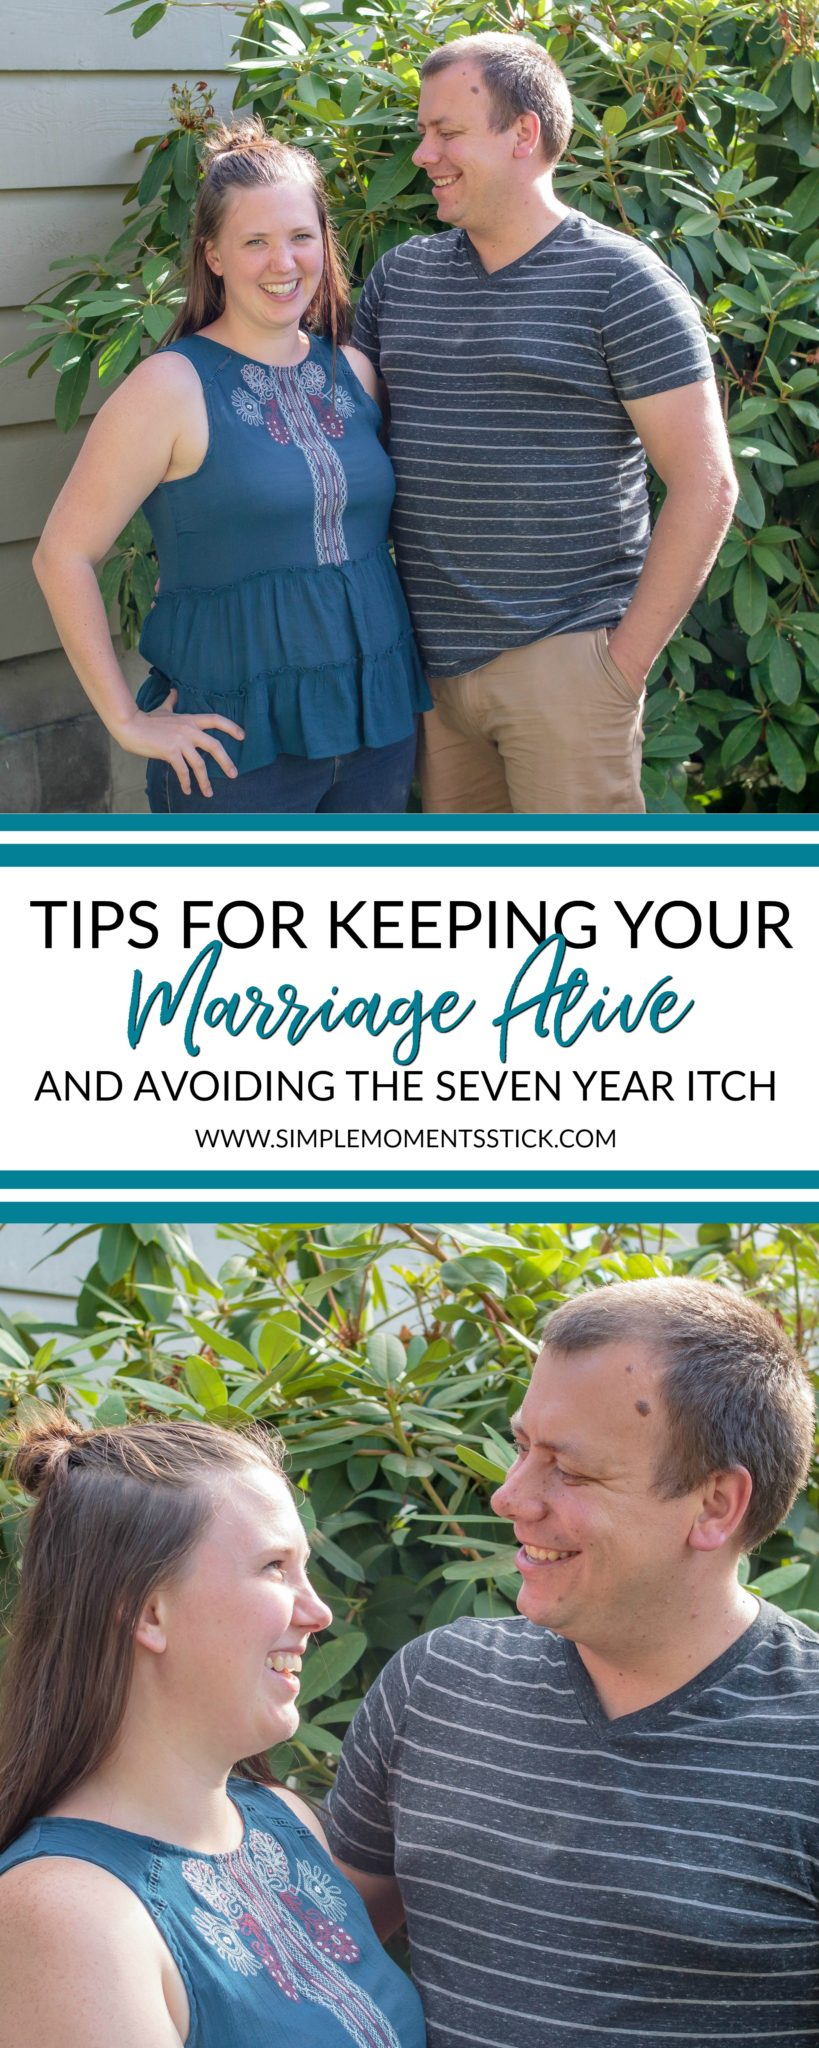 Tips for seven years of marriage! Make sure you avoid the seven year itch! #marriage #marriagetips #anniversary #sevenyearitch #7yearitch #sevenyearsofmarriage #marriageadvice